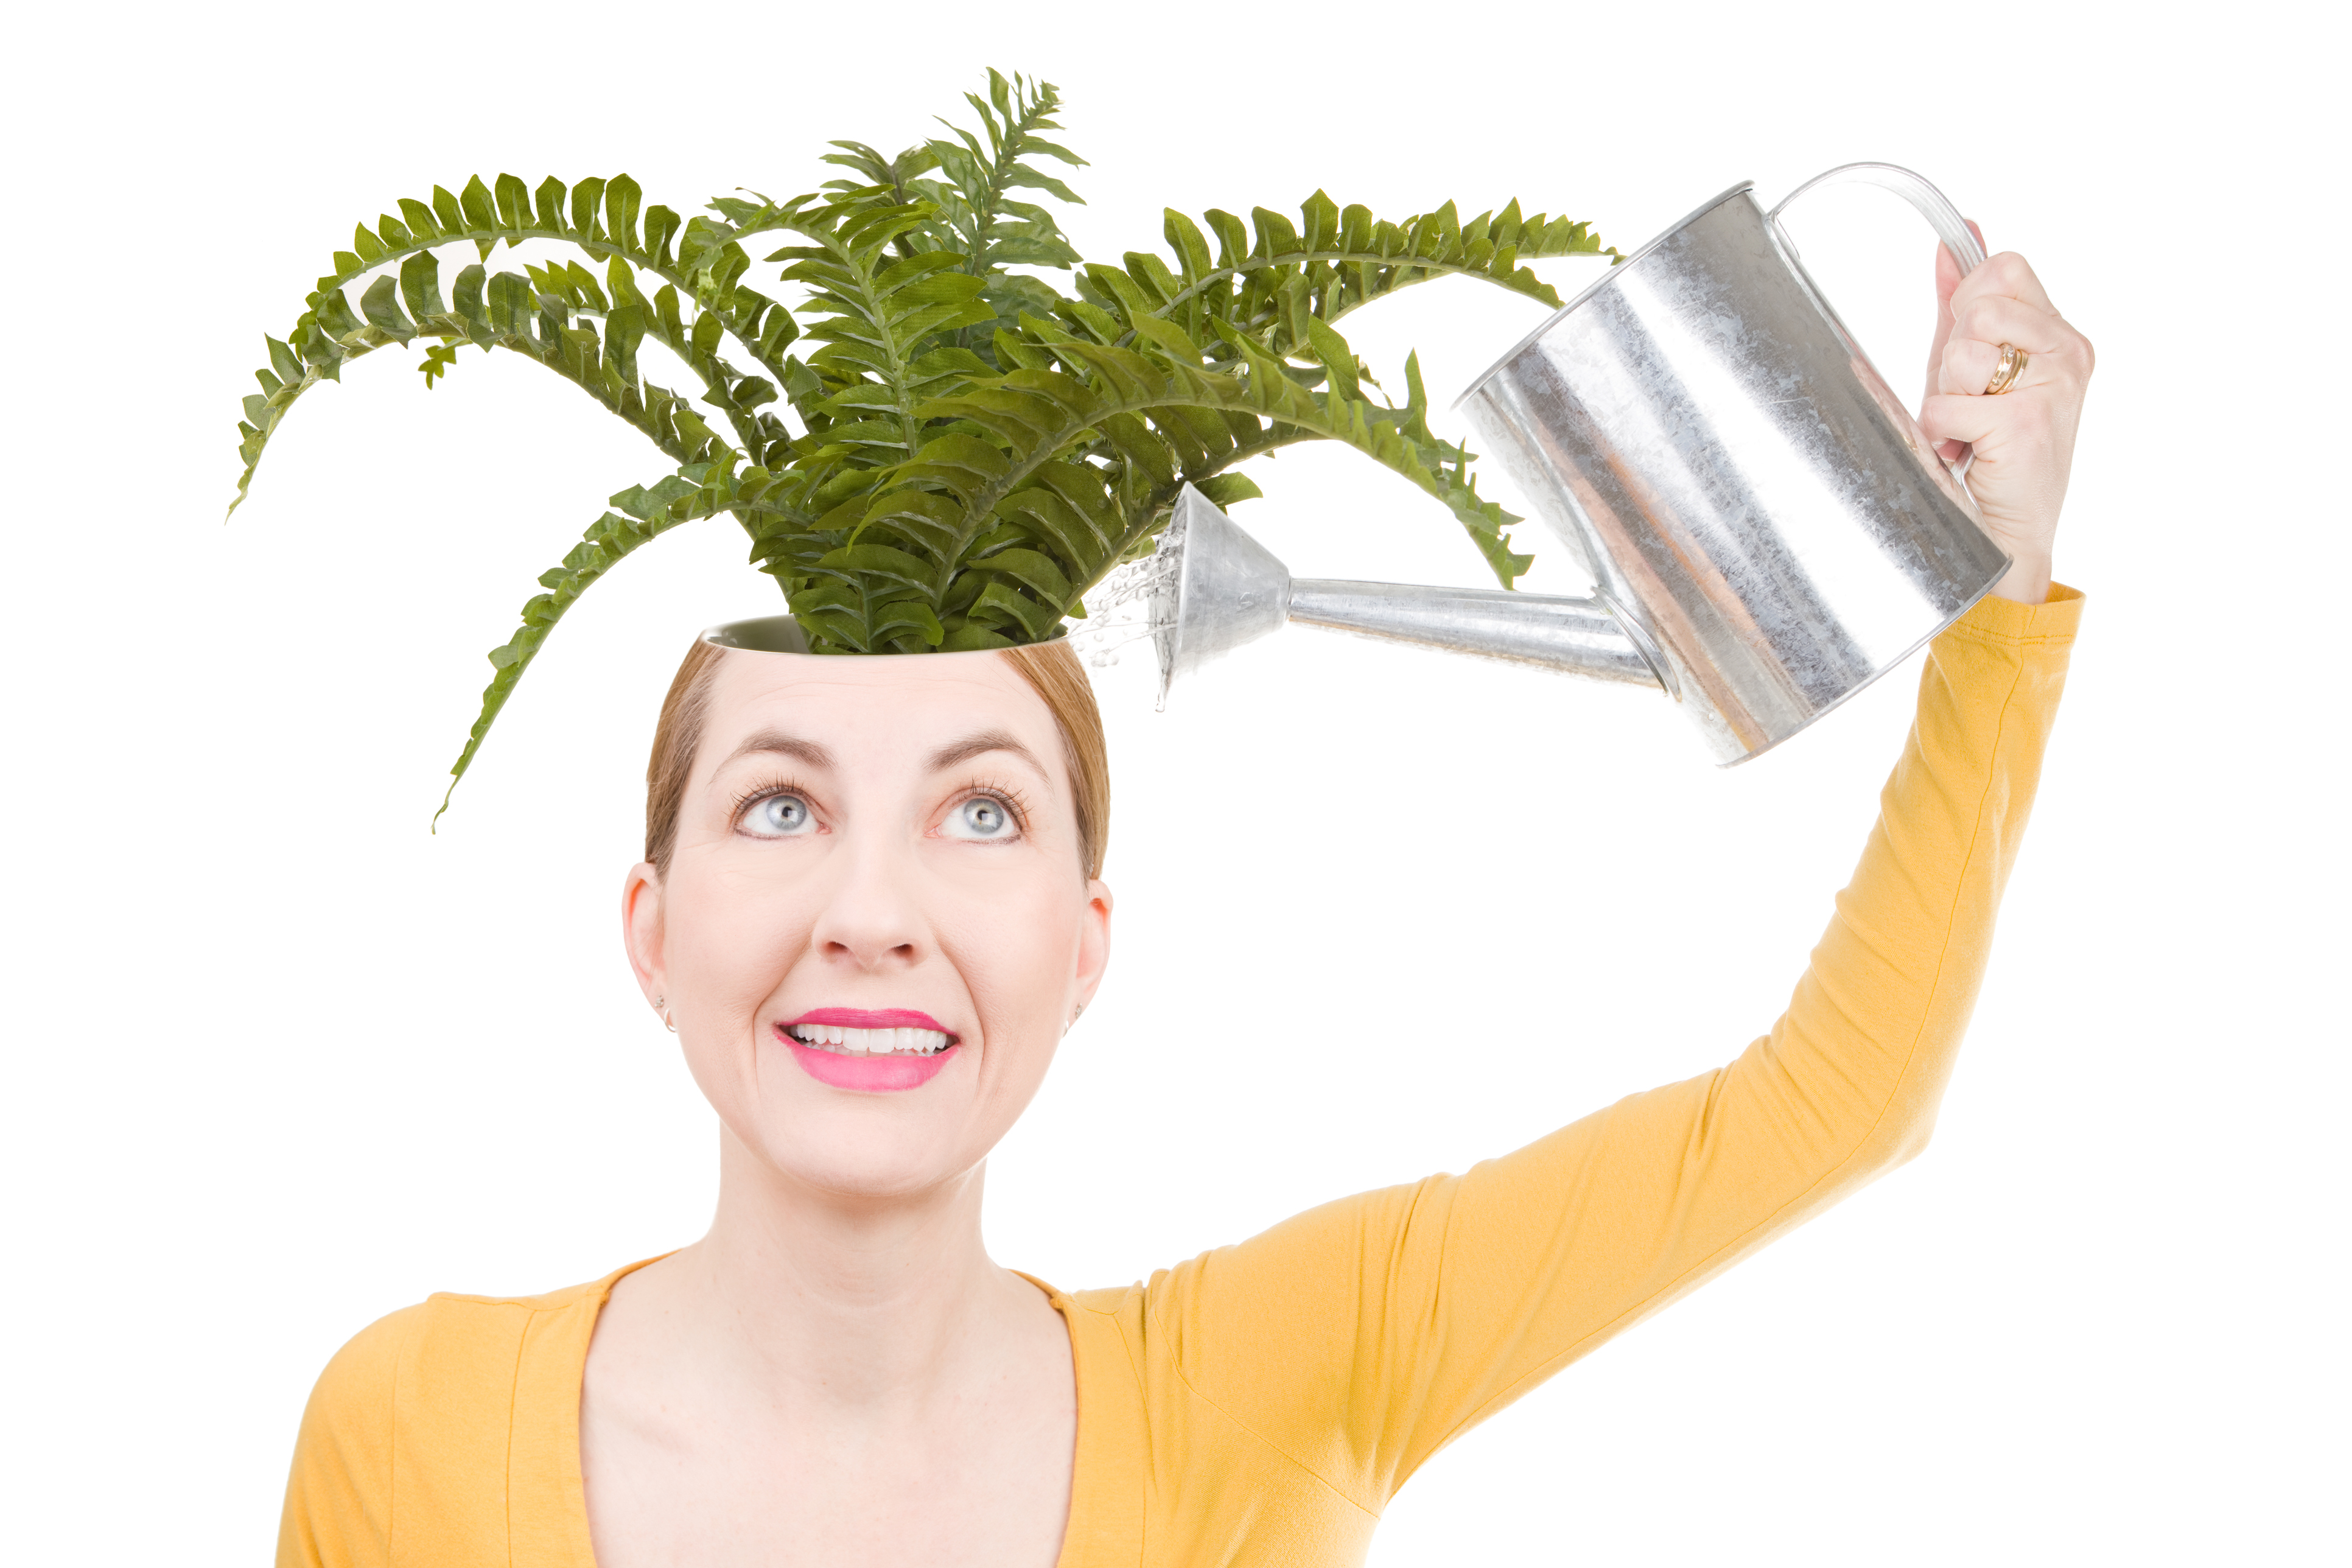 A conceptual image of a woman watering a plant that is growing from inside her head.